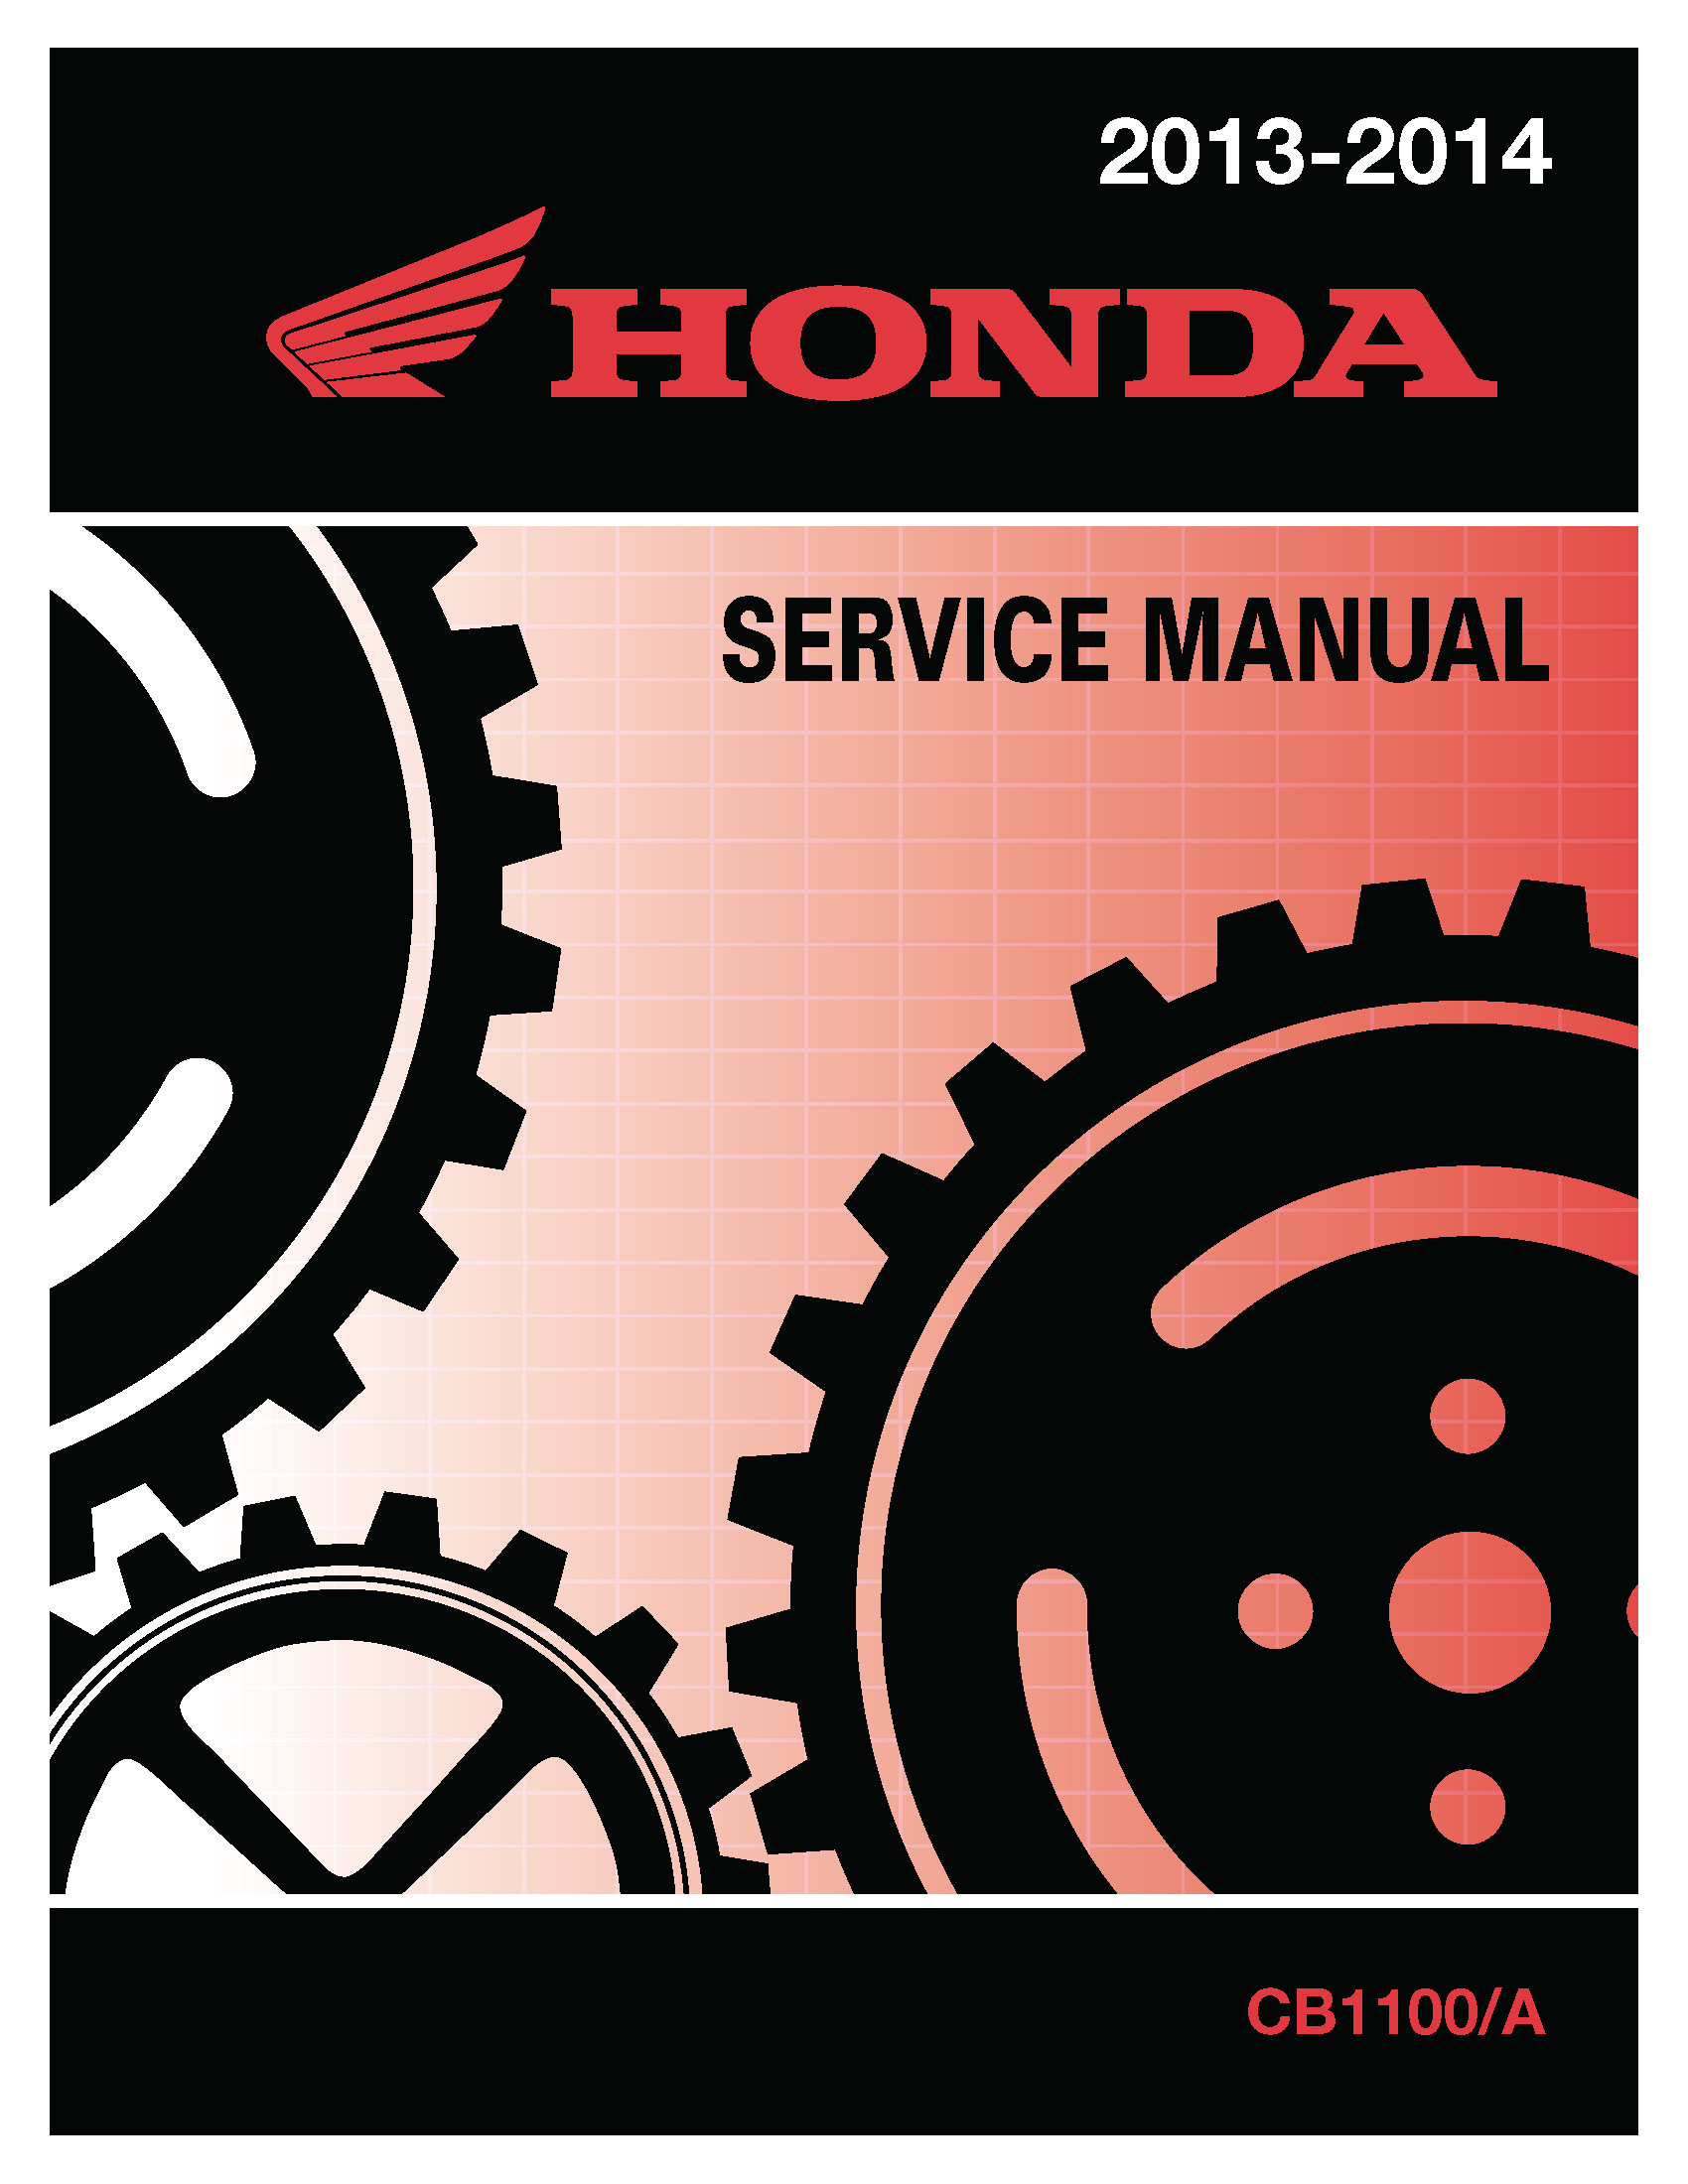 Honda 2013-2017 CB1100/A Service Manual Shop Repair 13 2014 14 2015 15 2016  16